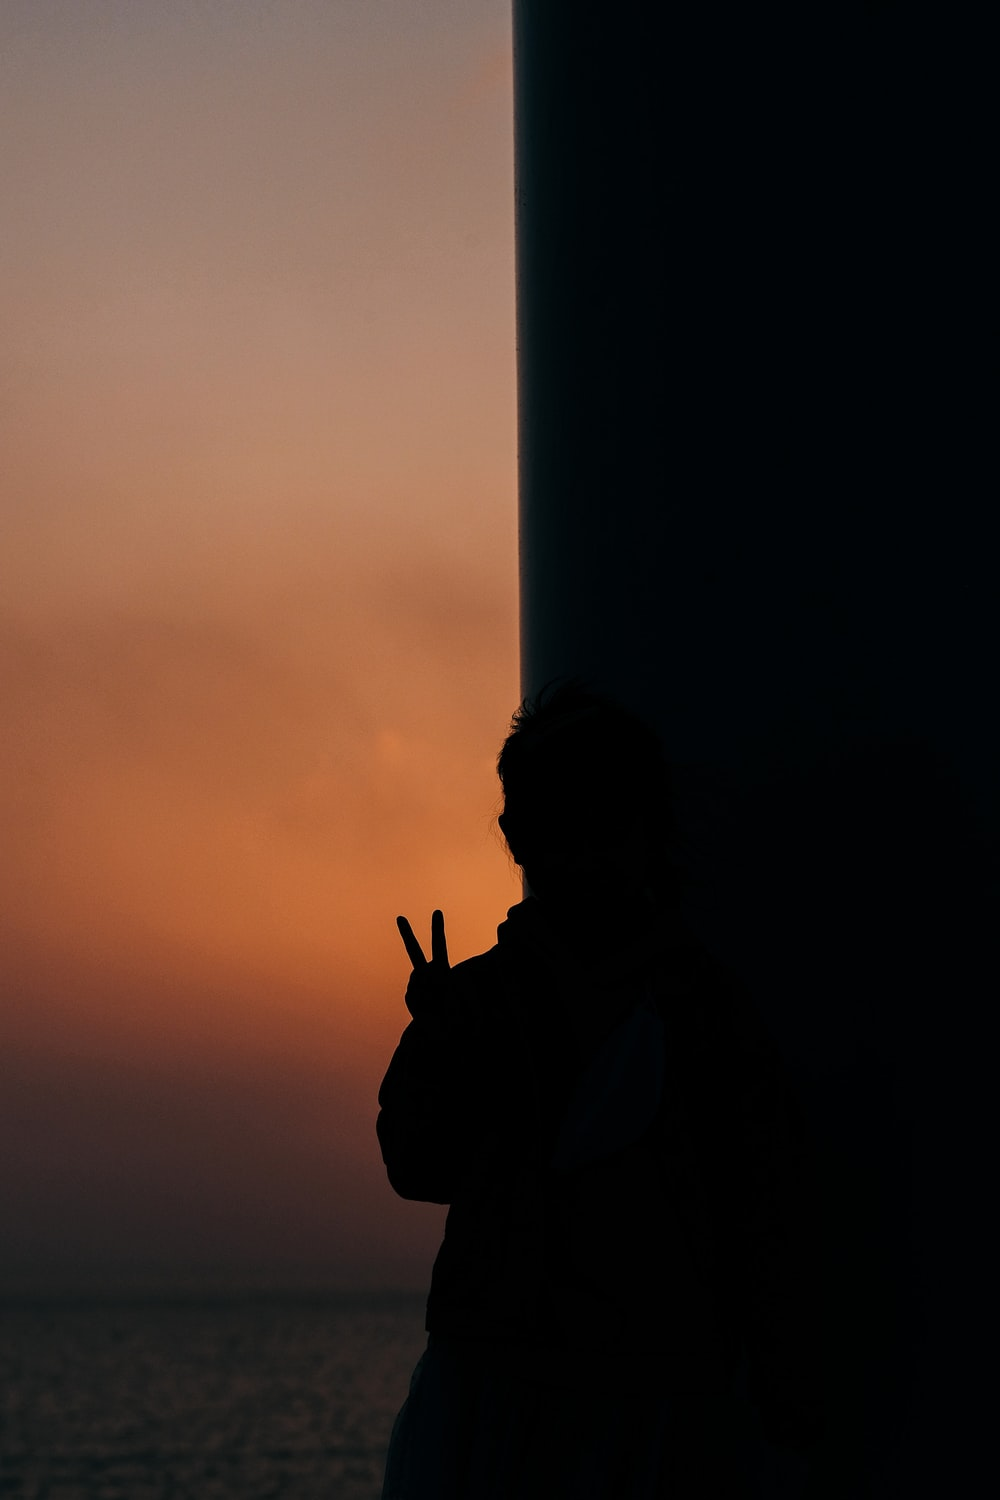 silhouette of man standing near white post during sunset